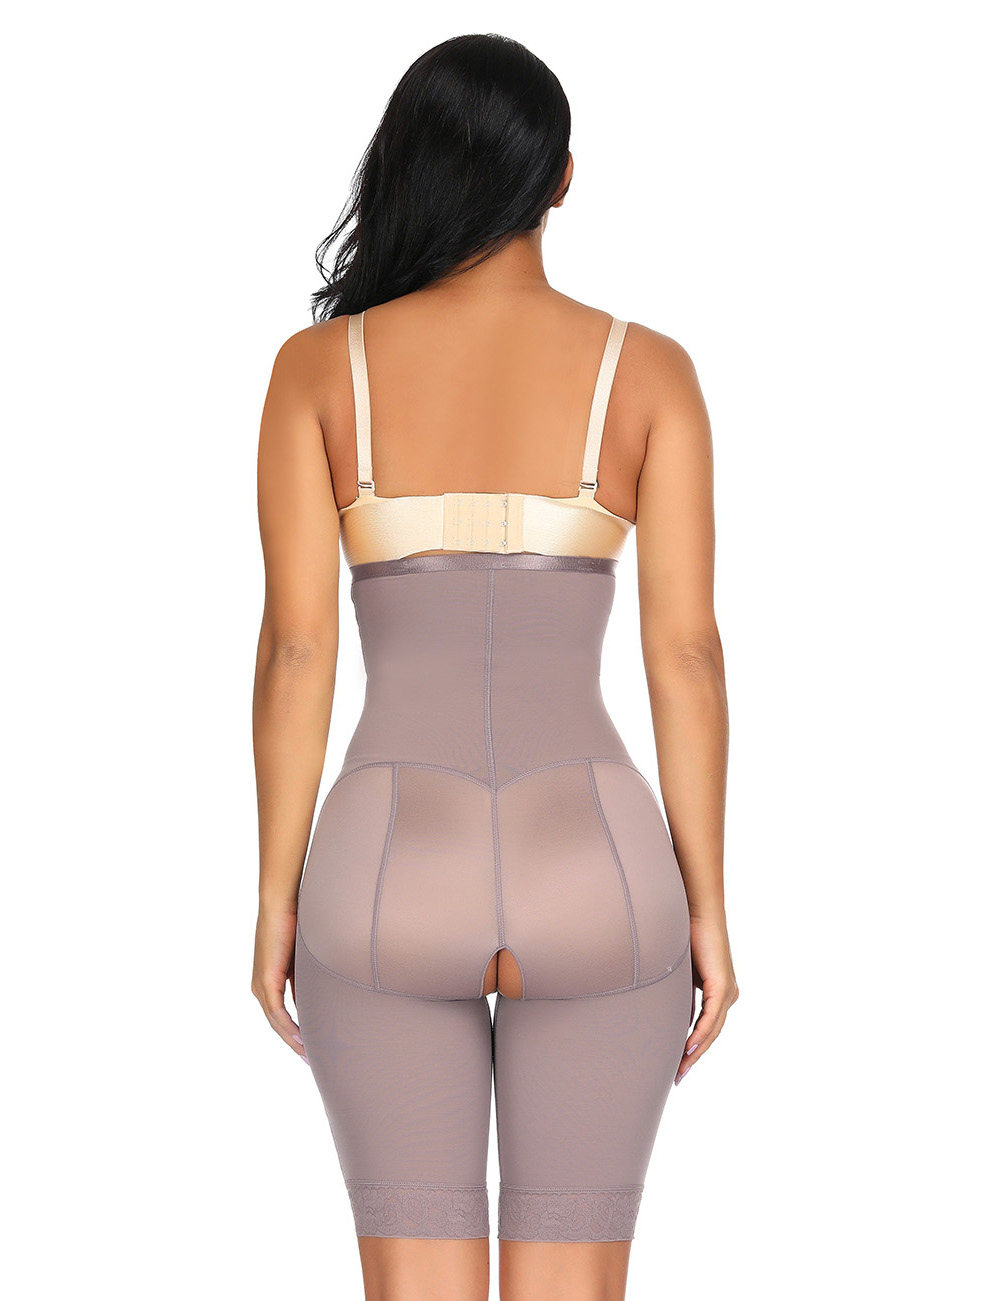 //cdn.affectcloud.com/hexinfashion/upload/imgs/Shaper/Body_Shaper/B180123-BN5/B180123-BN5-201911055dc11f36eb031.jpg